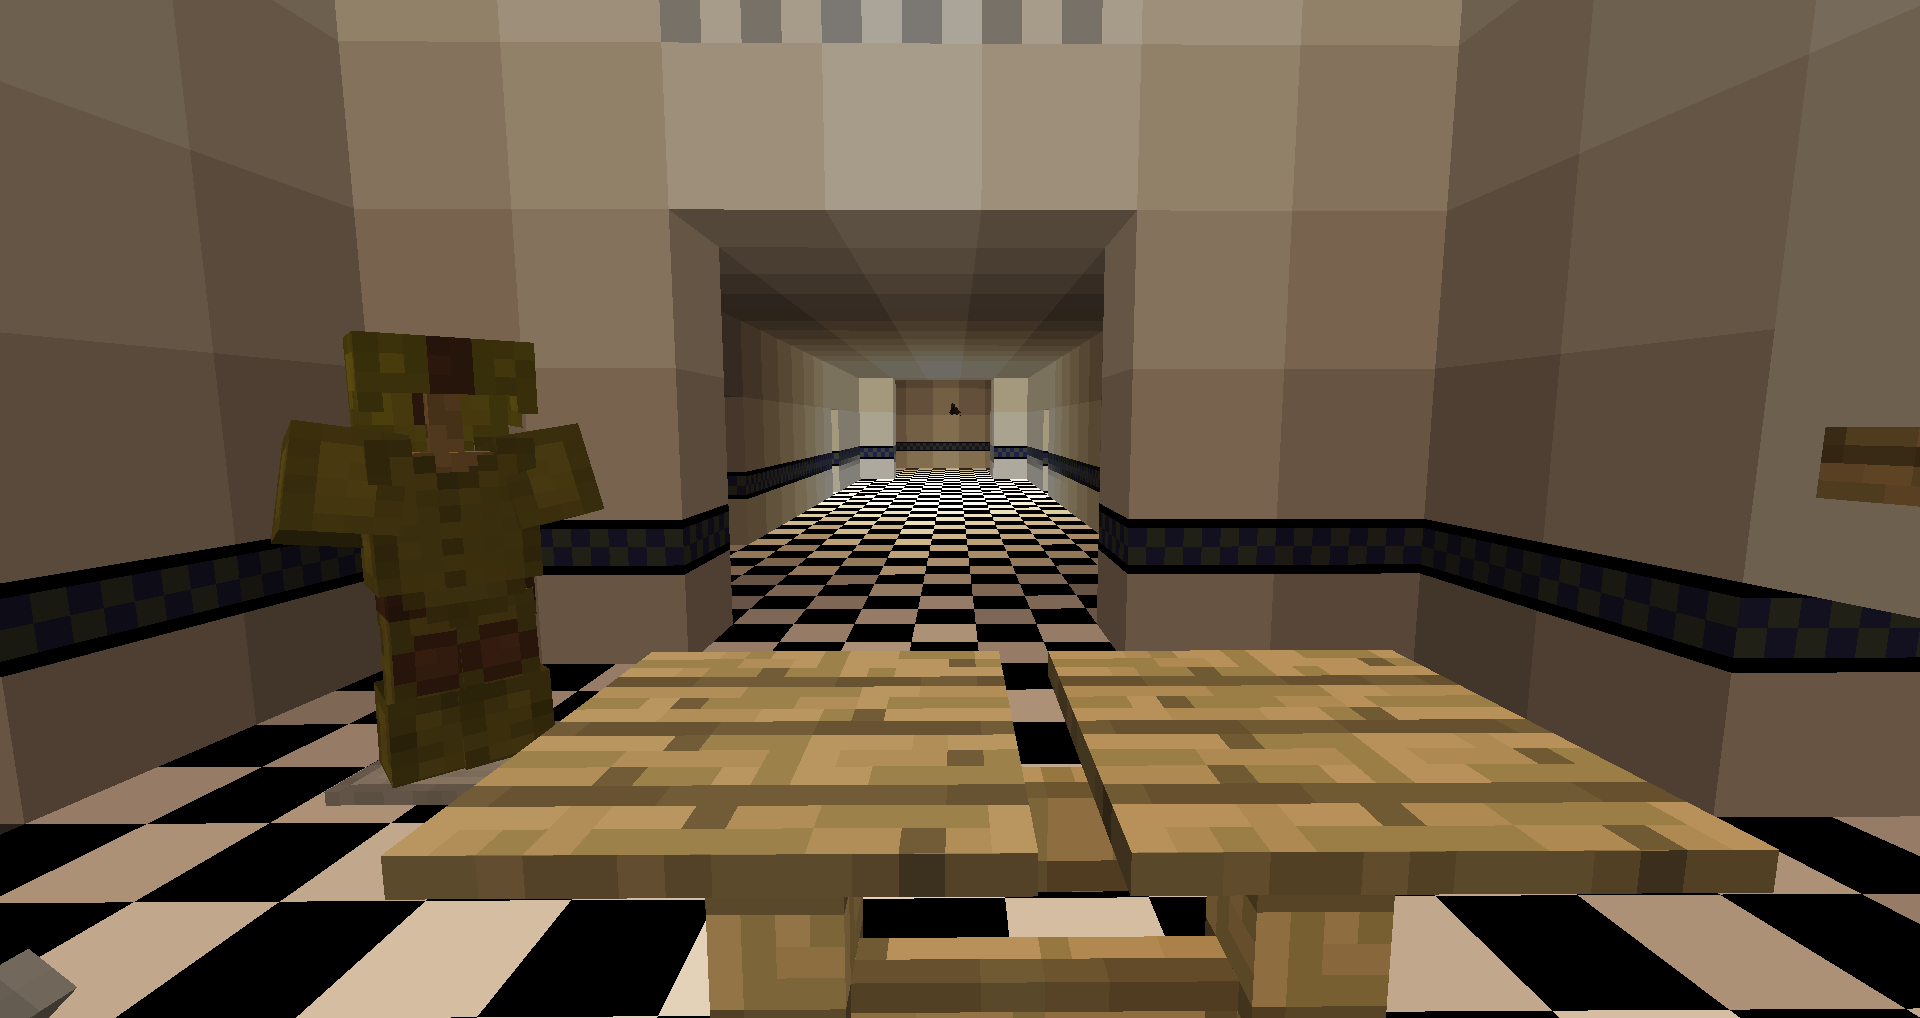 Top Five Five Nights At Freddy's 2 Minecraft Map - Circus